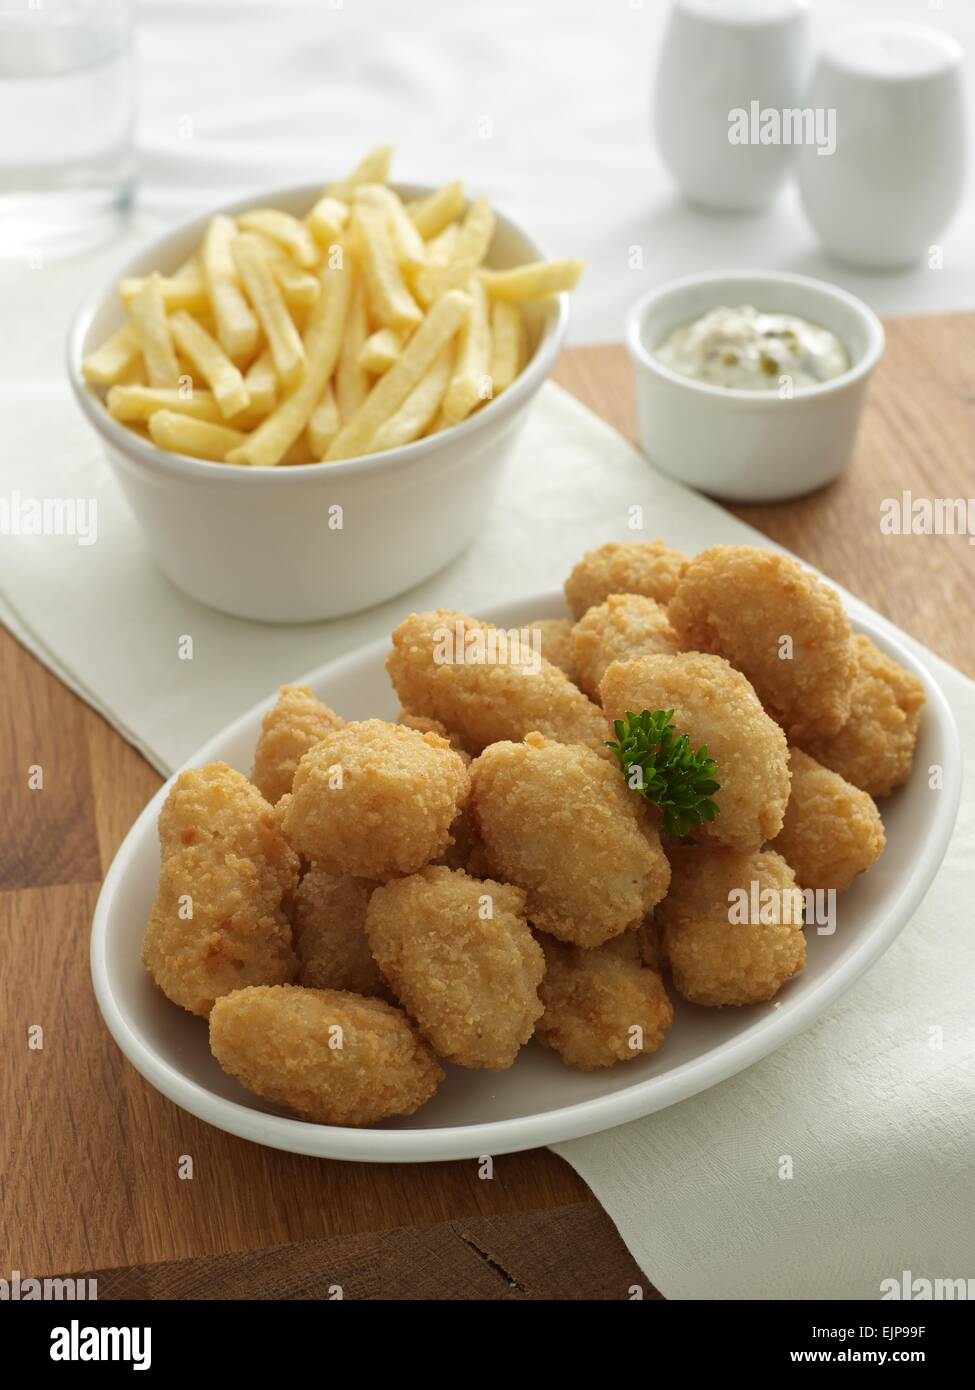 Breaded fish nuggets chips  separate bowls tartare sauce cruet set glass of water.wooden board - Stock Image